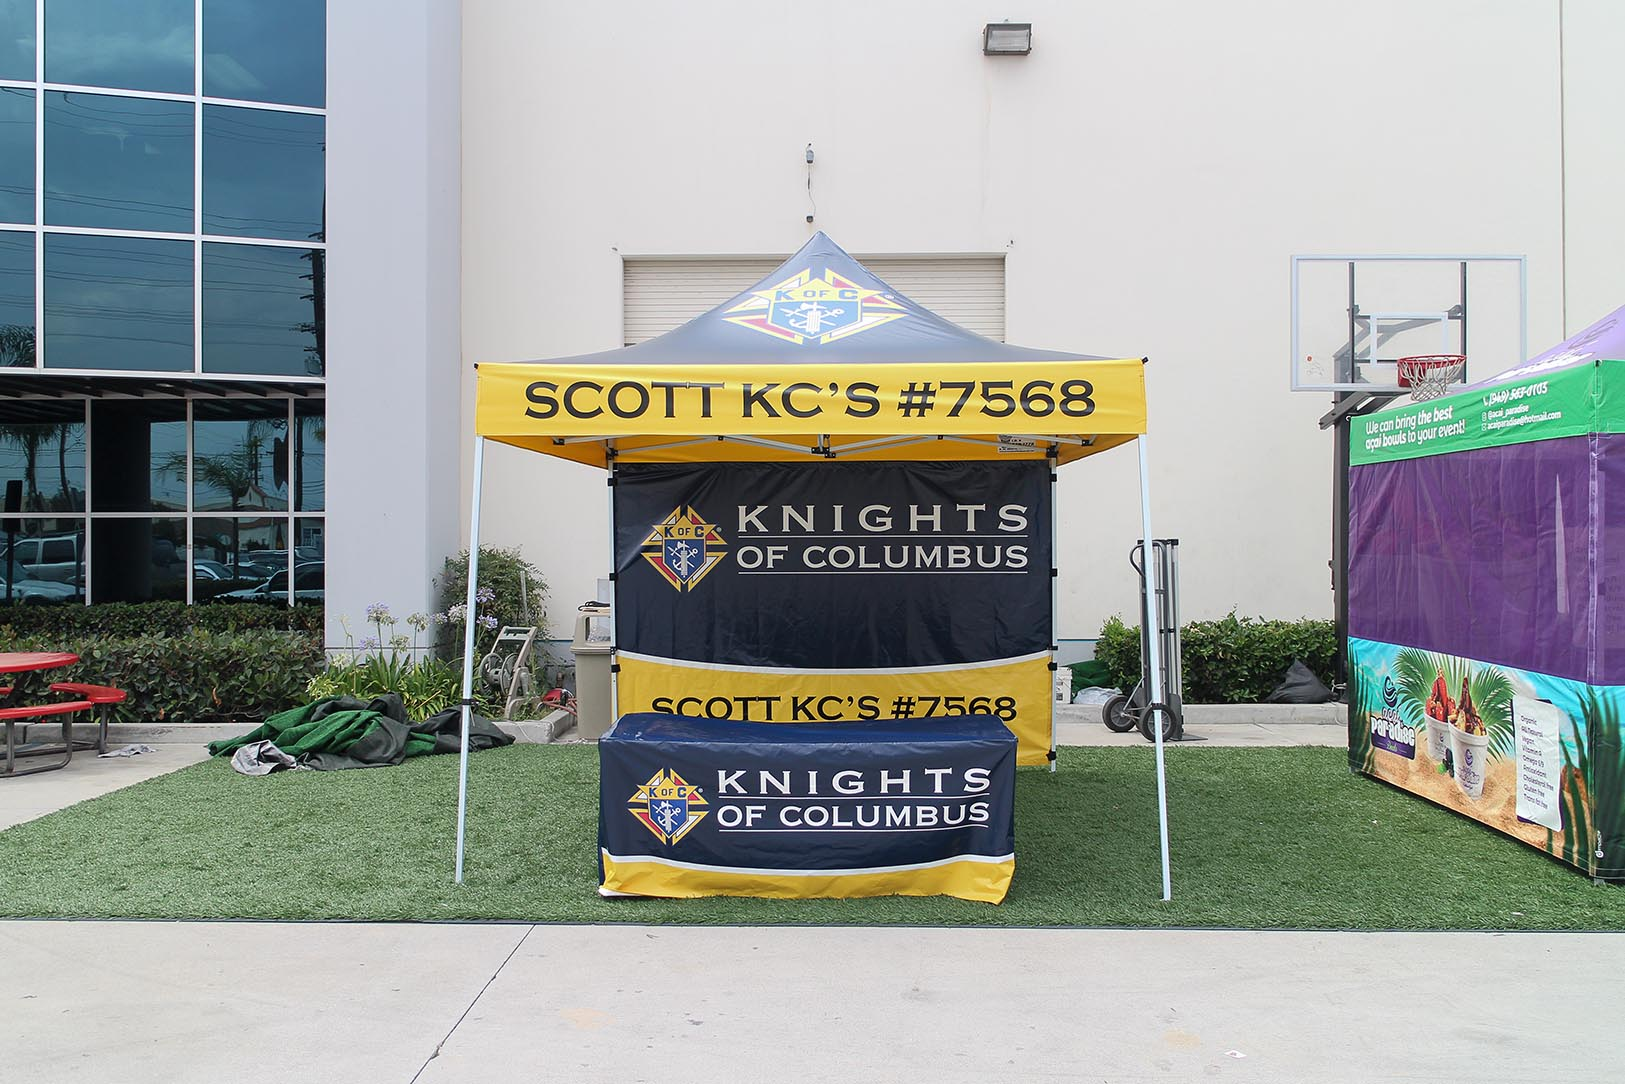 knights-of-columbus-logo-tent